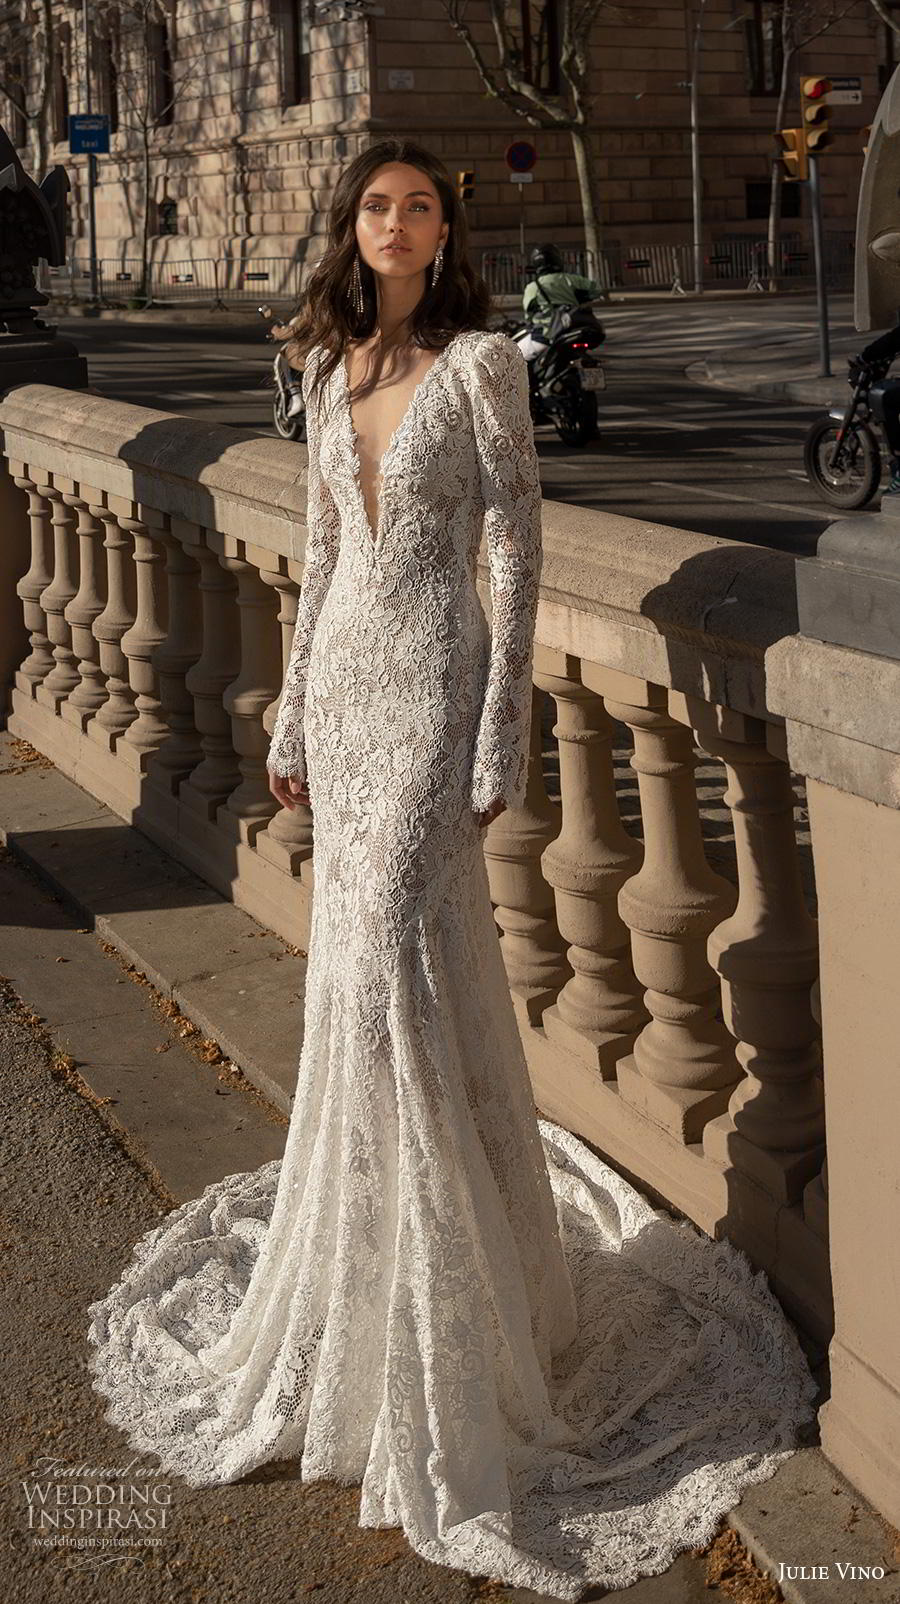 julie vino 2020 barcelona bridal long sleeves deep v neck full embellishment elegant fit and flare wedding dress backless low back medium train (6) mv